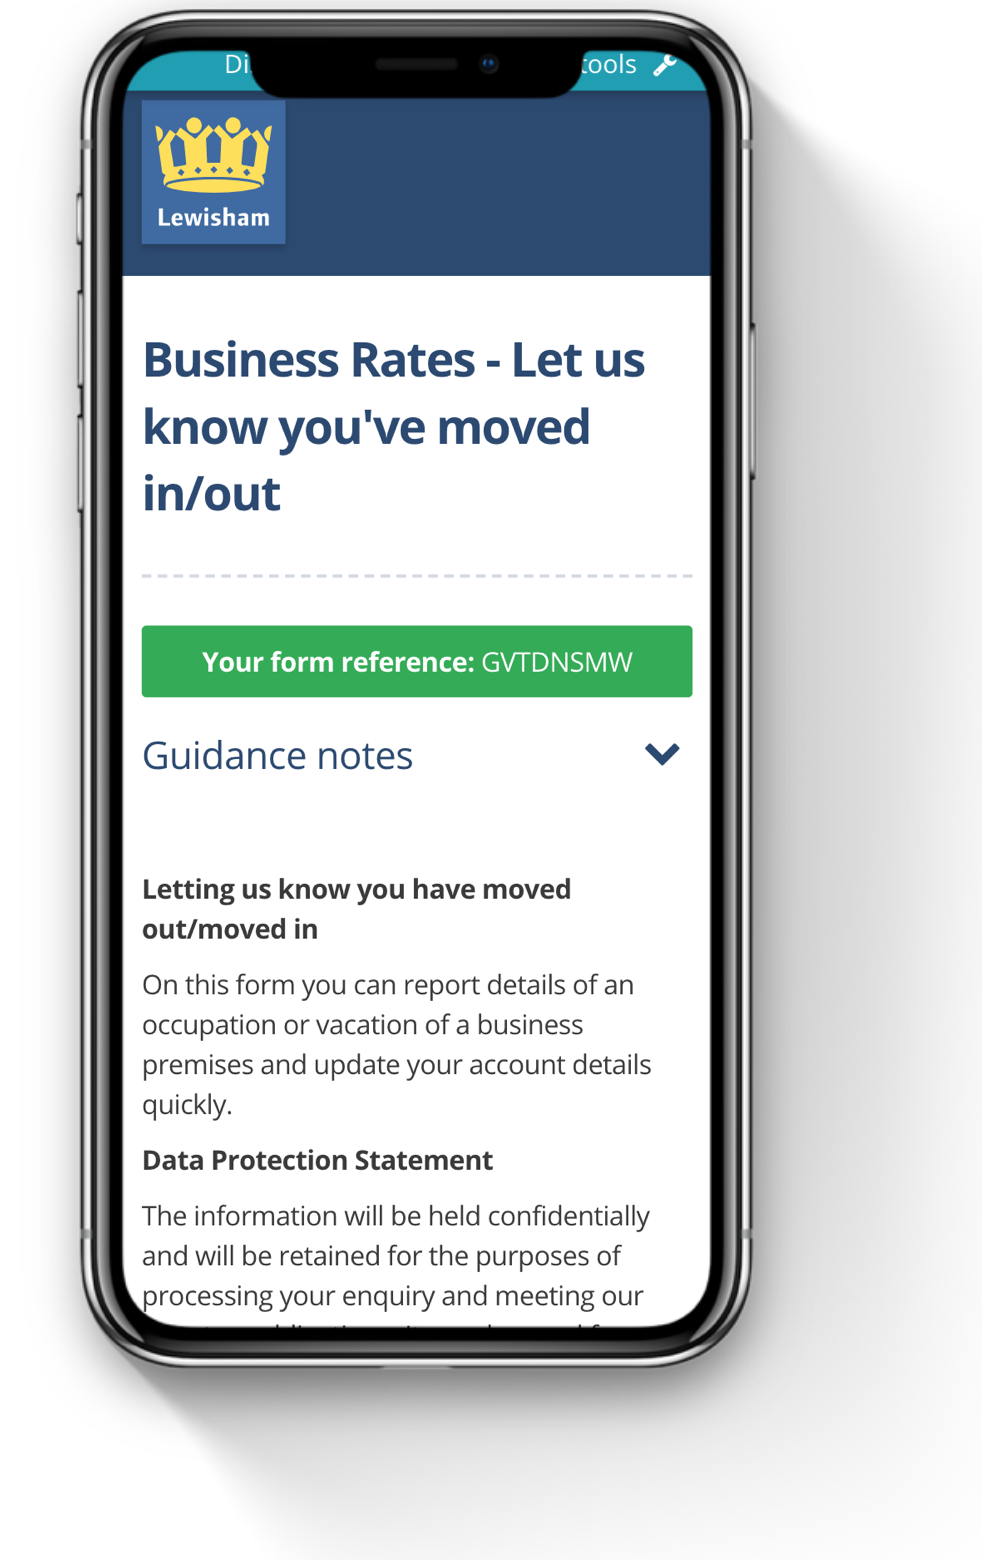 example of business rates form from IEG4